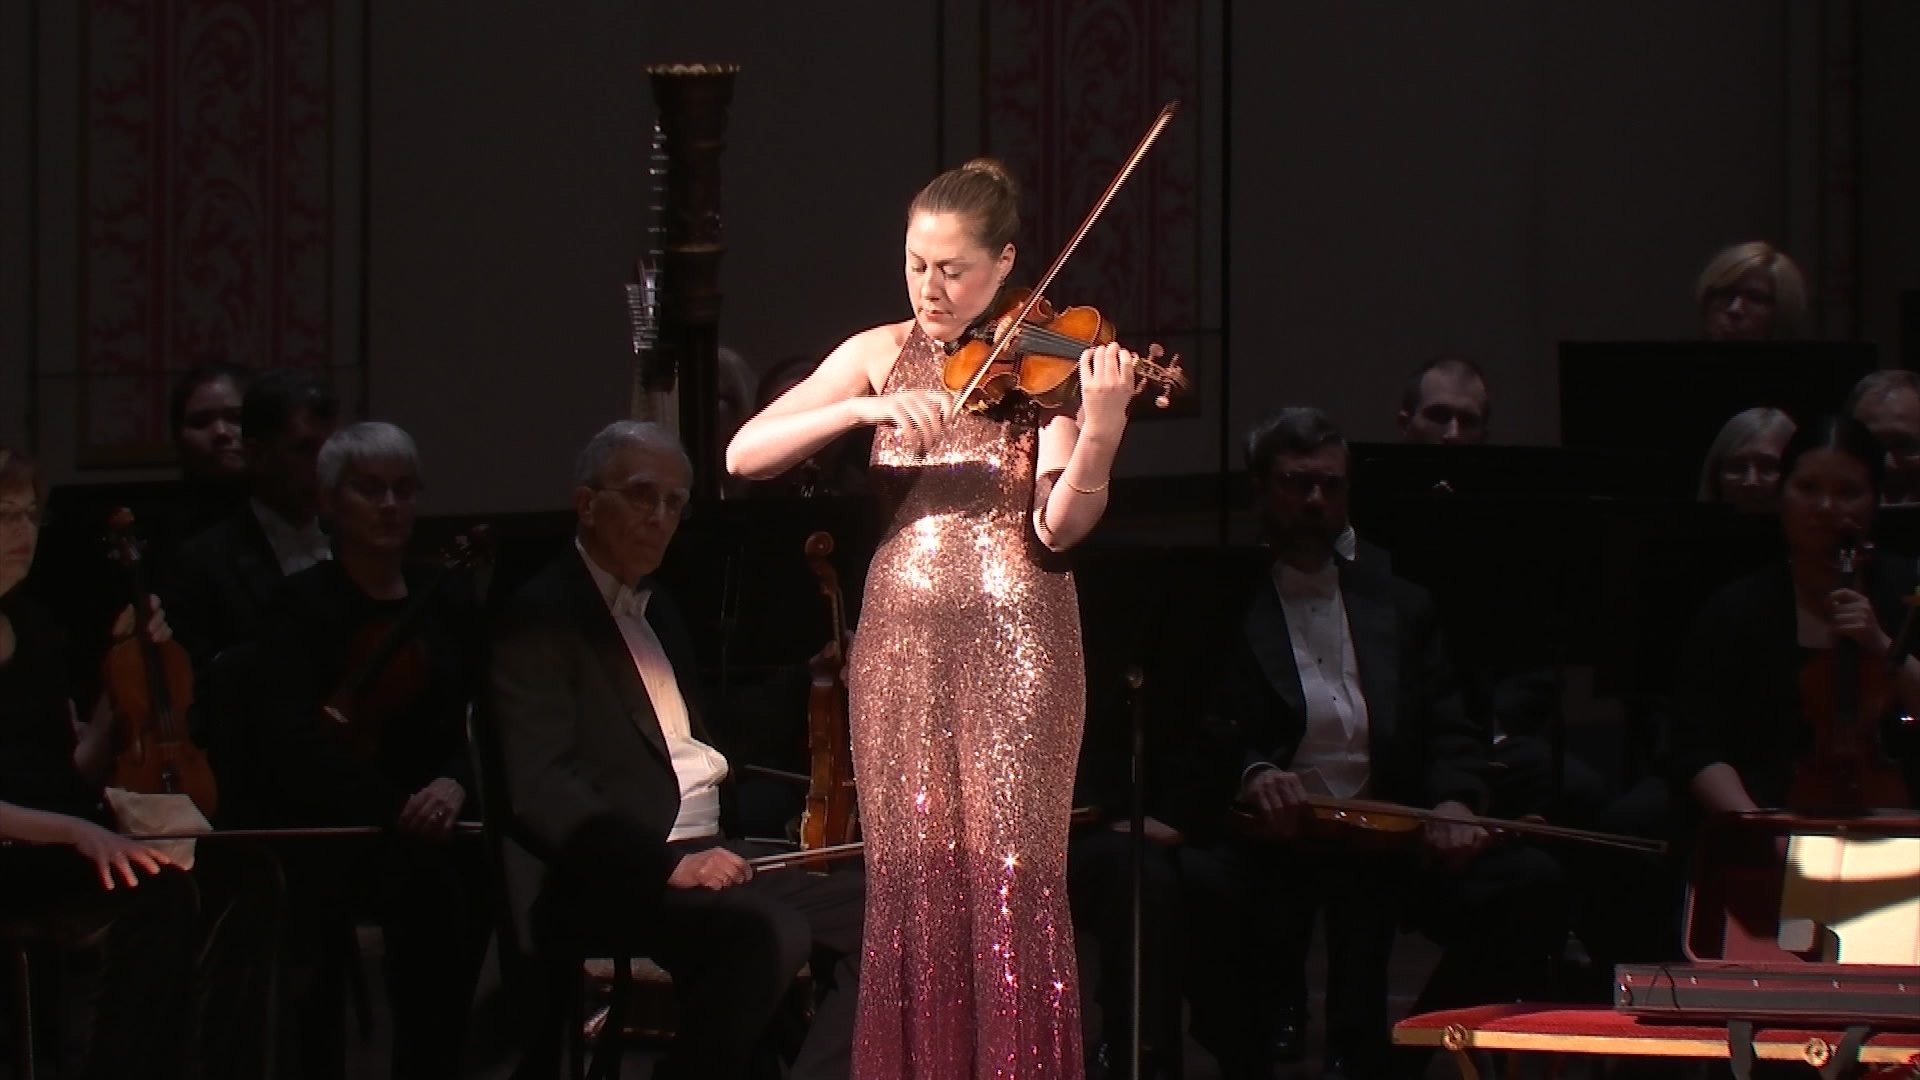 Sound of Paganini's violin fills the air in Columbus